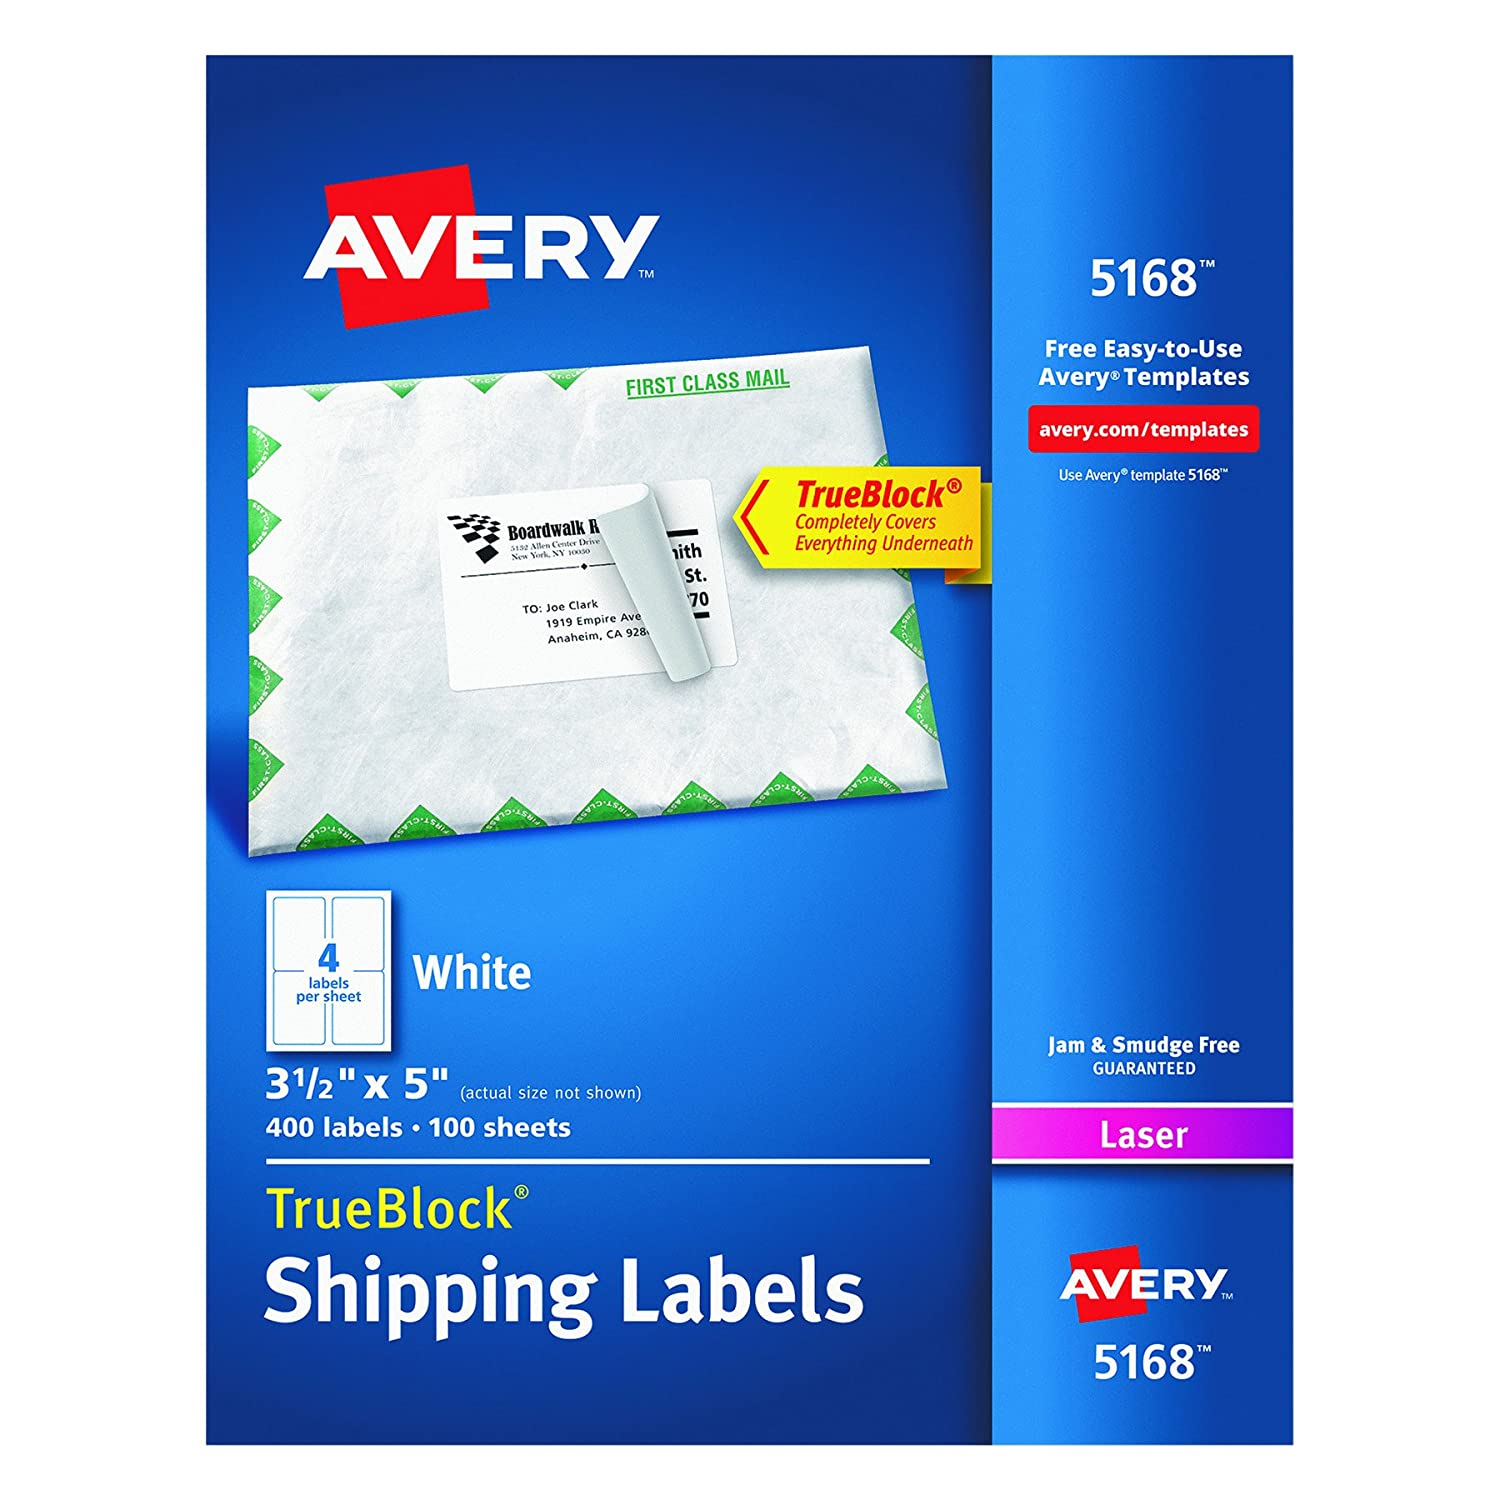 Amazon avery shipping labels with trueblock technology for amazon avery shipping labels with trueblock technology for laser printers 3 12 x 5 box of 400 5168 office products pronofoot35fo Gallery